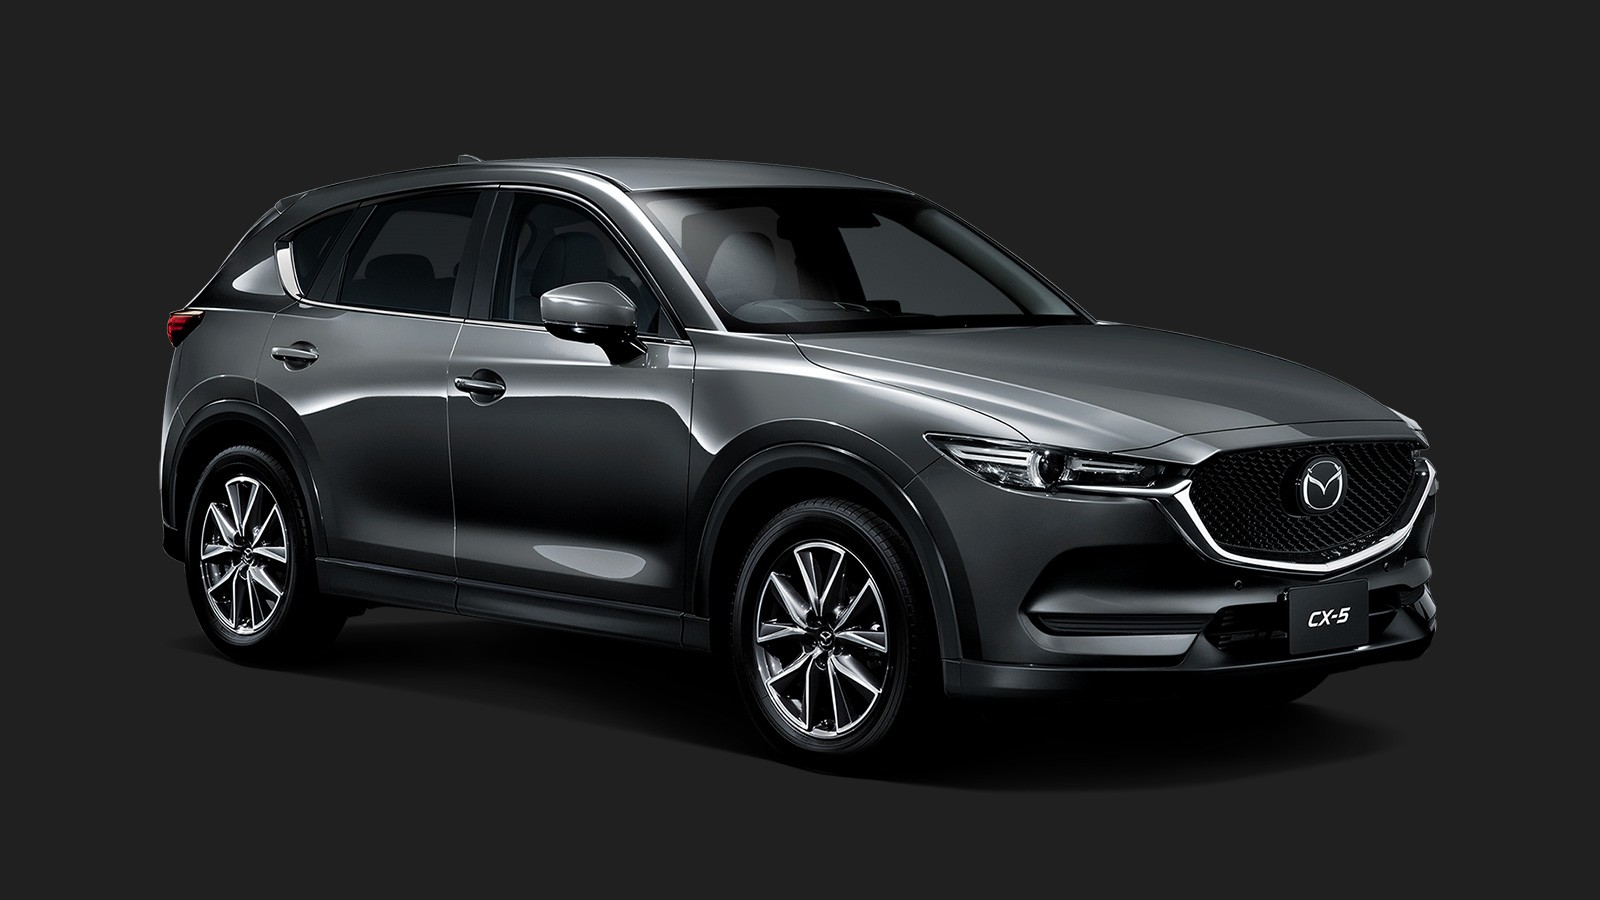 2017 Mazda Cx 5 Getting 7 Seat Version In Japan Autoevolution